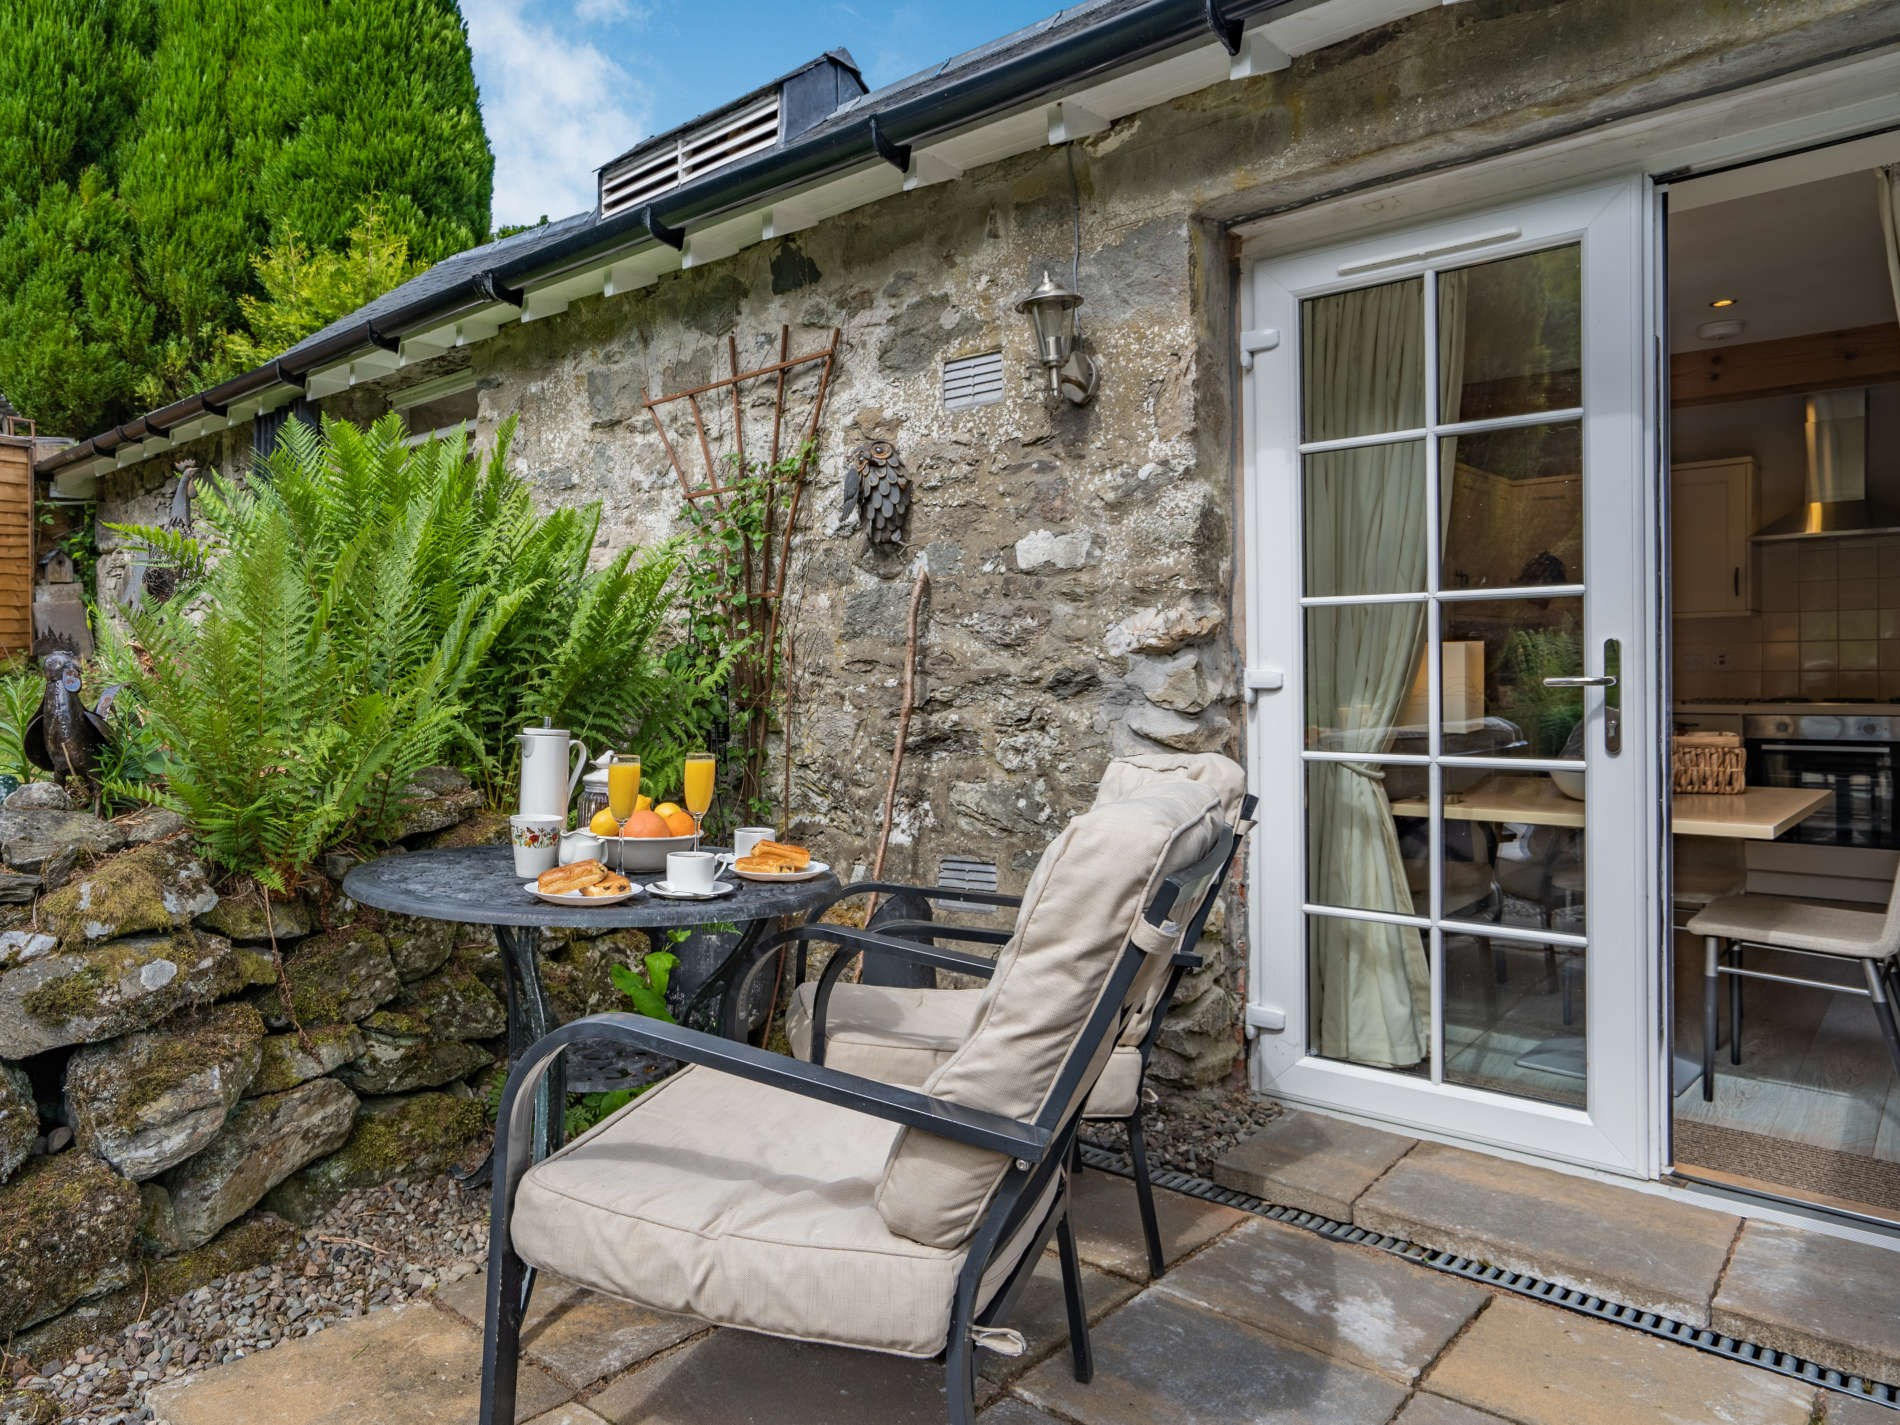 1 Bedroom Cottage in Stirling and Clackmannanshire, Perthshire, Angus and Fife